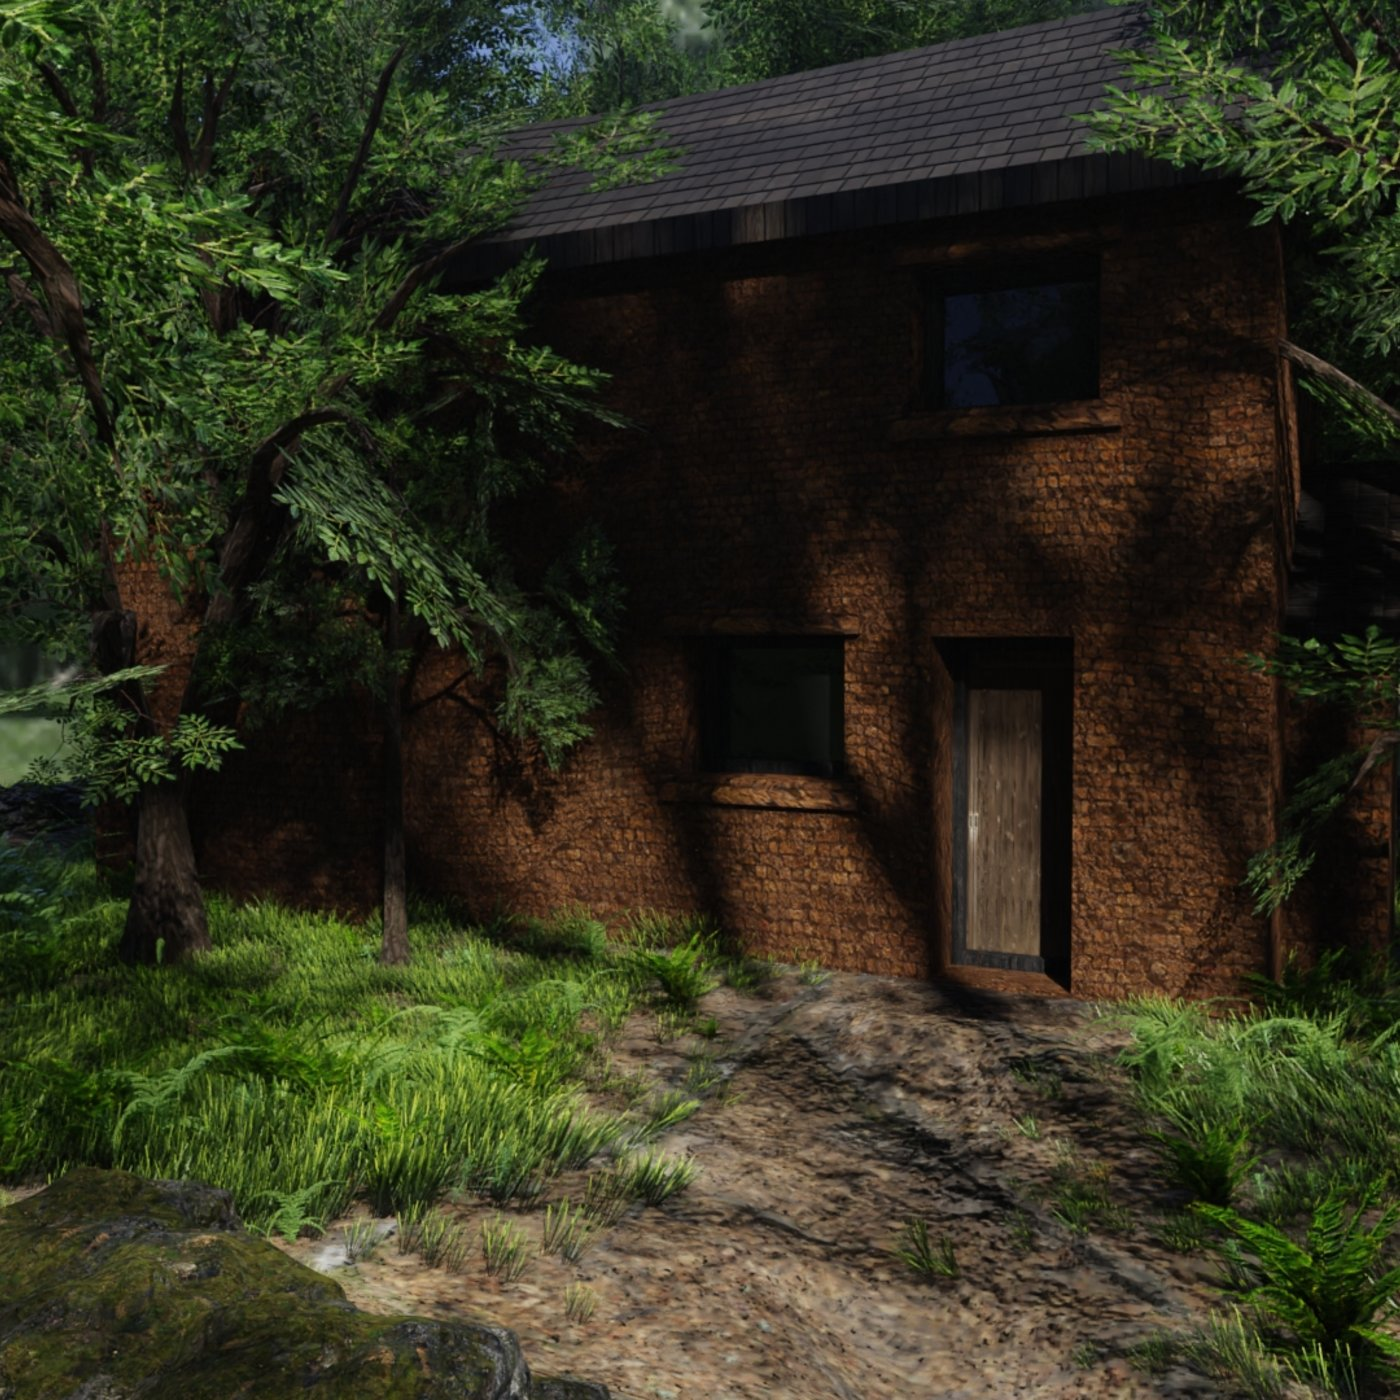 House in Forest Scene